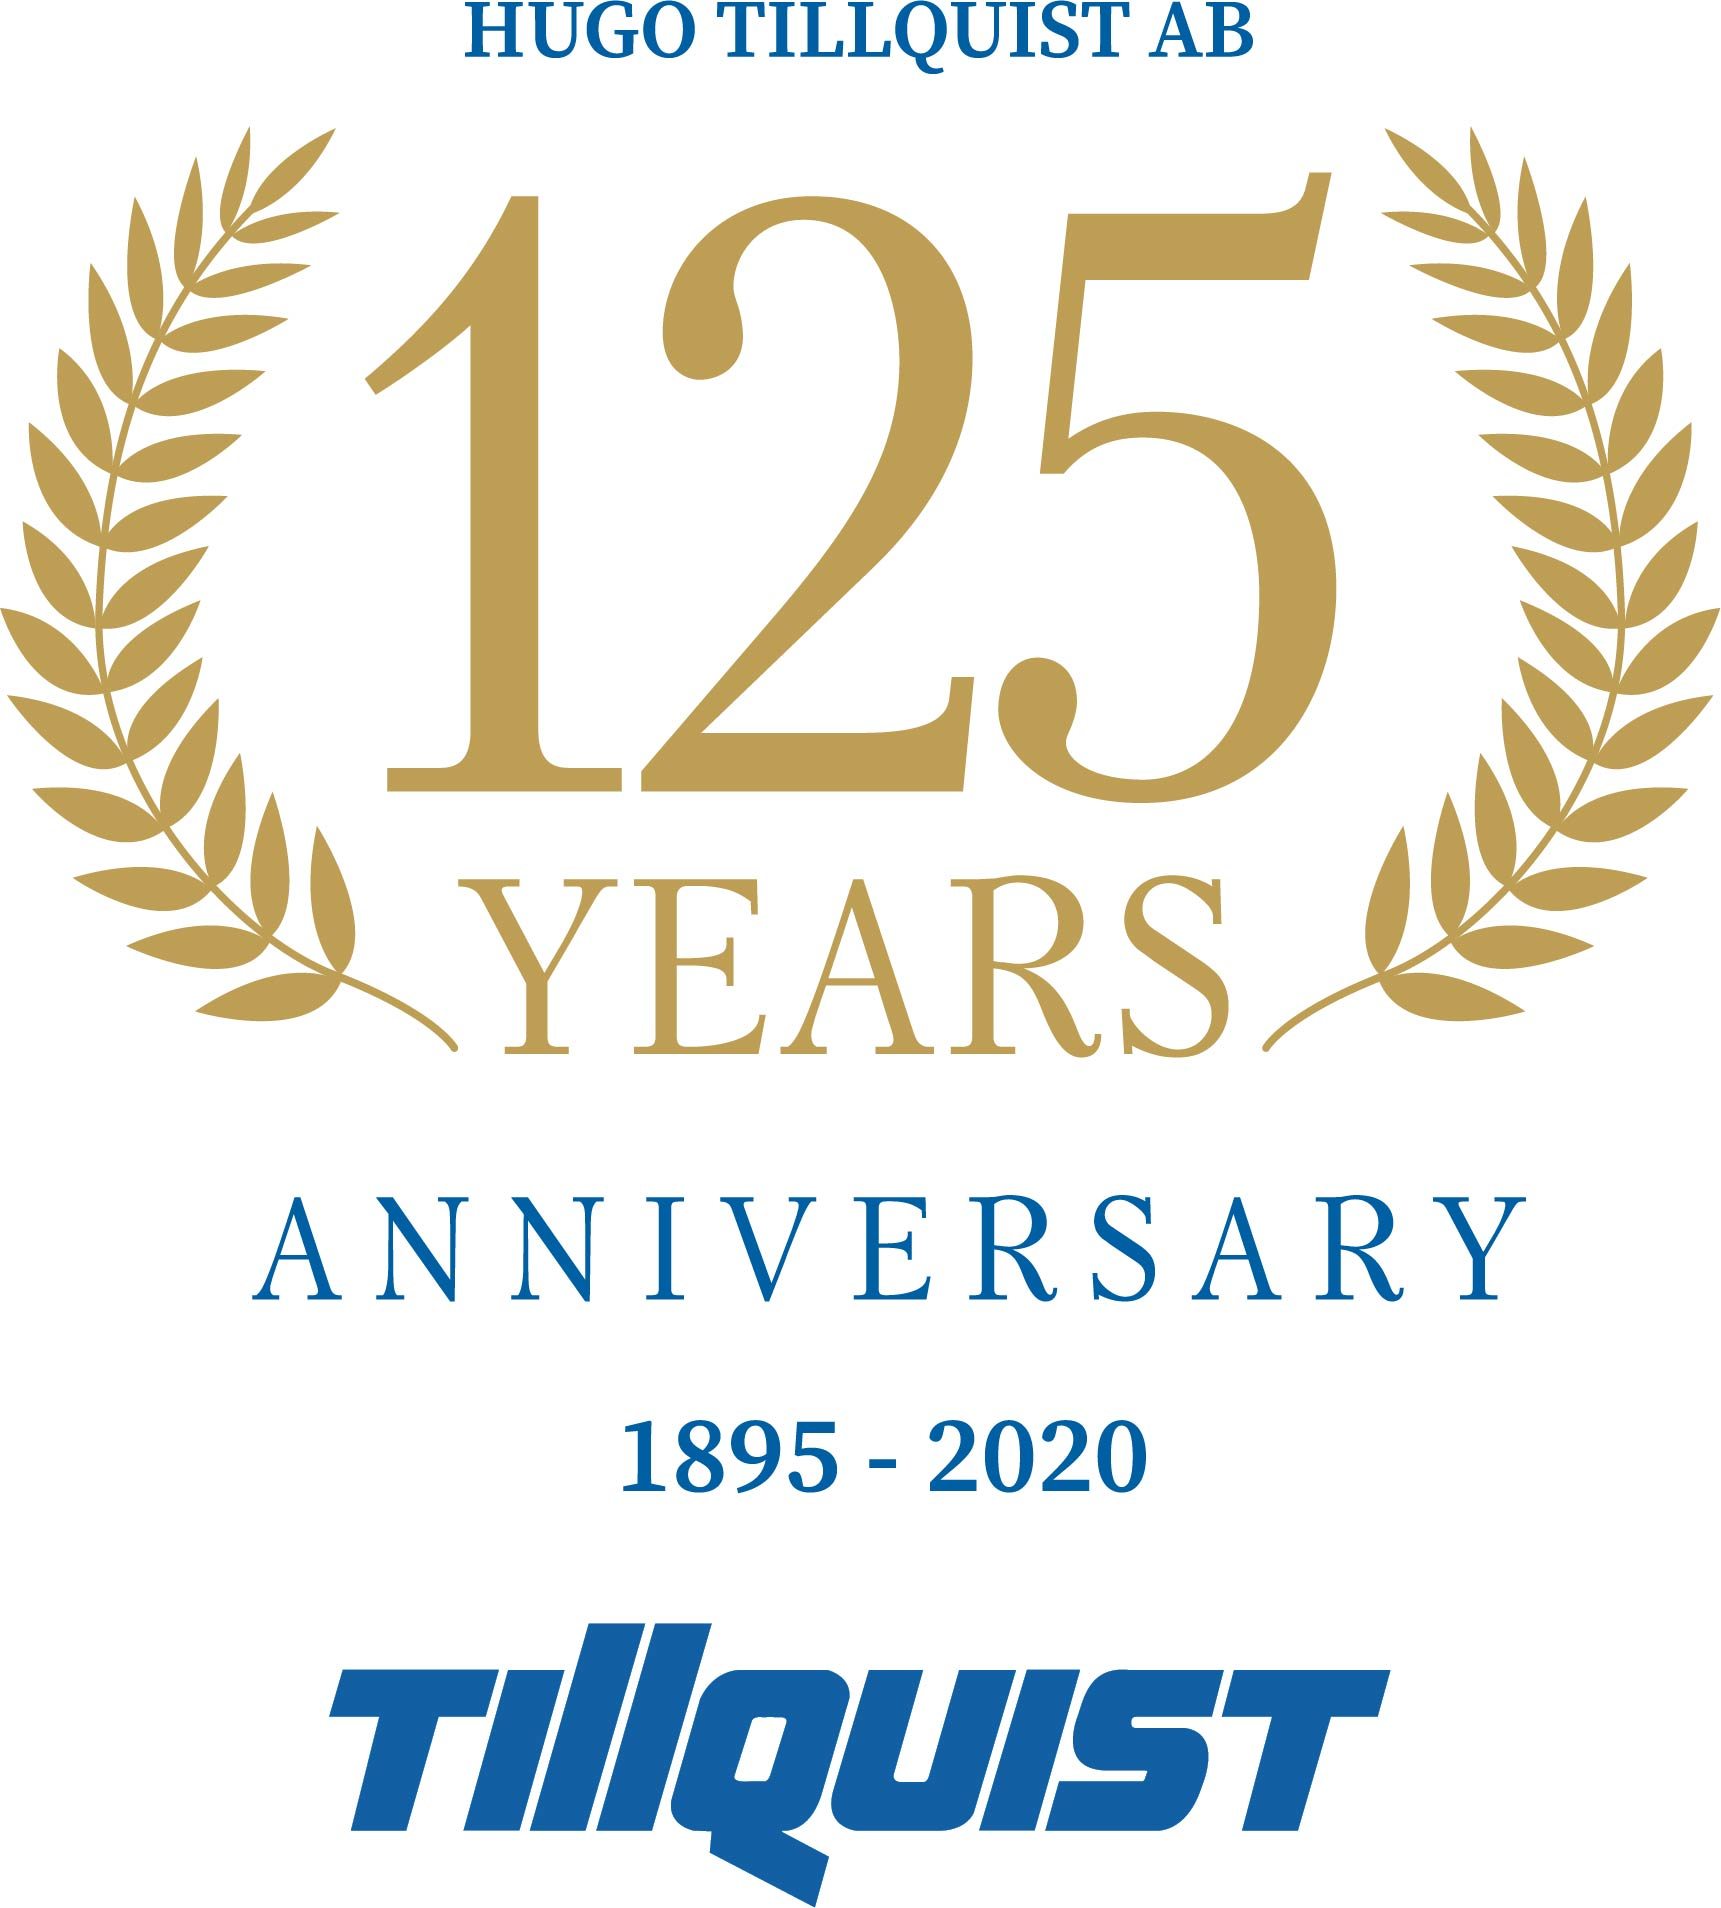 Hugo Tillquist AB 125 years anniversary